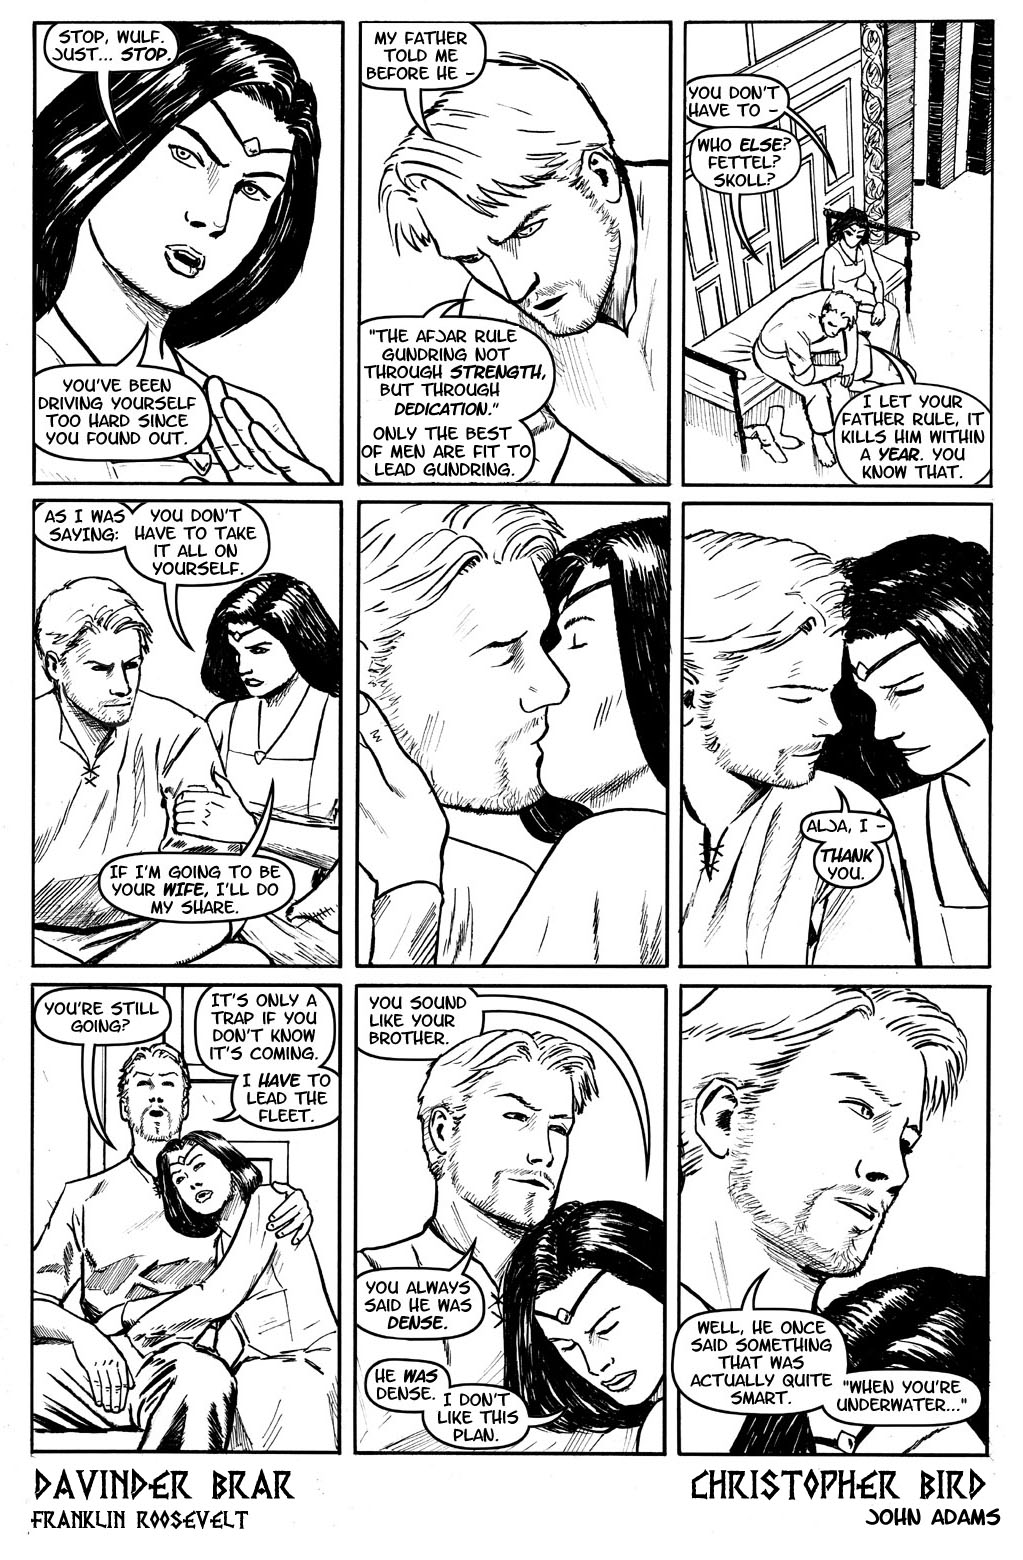 Book 3, page 4